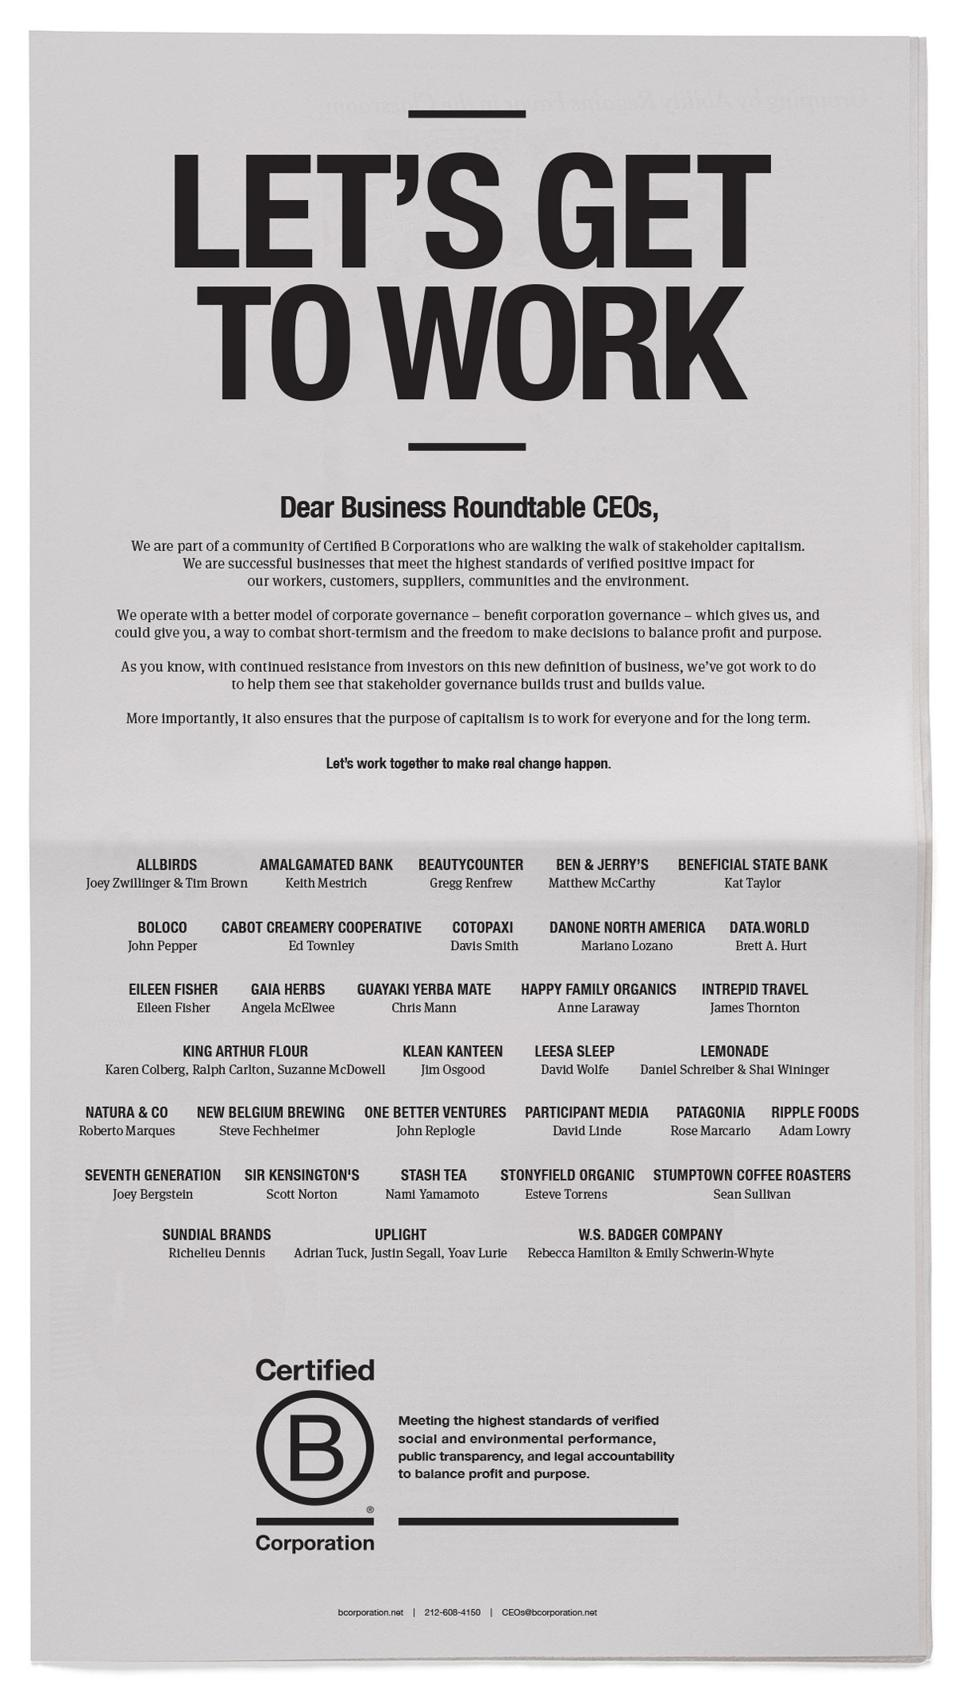 Certified B Corporation ad in The New York Times